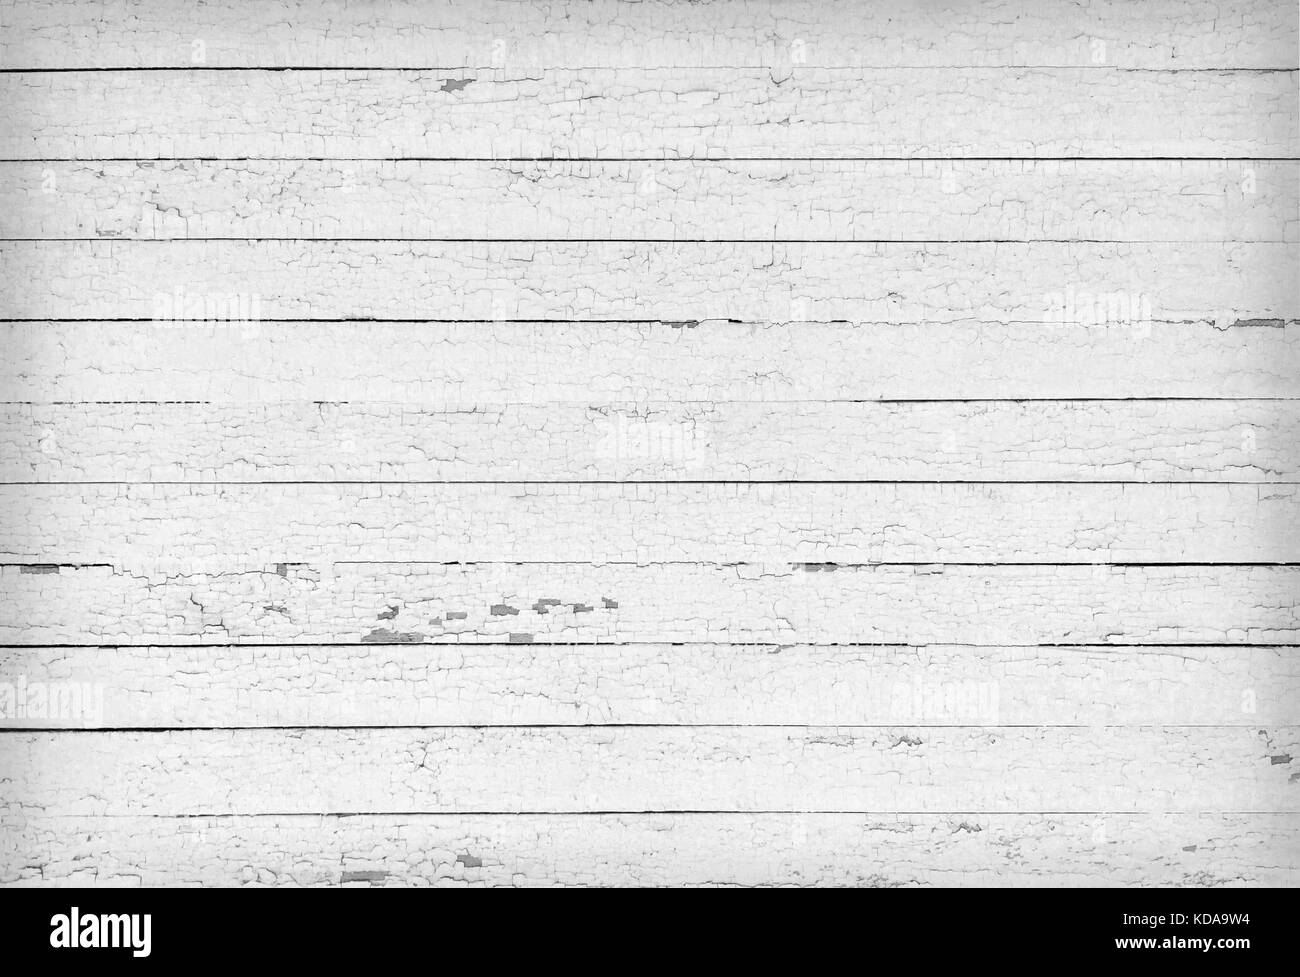 Black and white texture of blank wooden planks - Stock Image